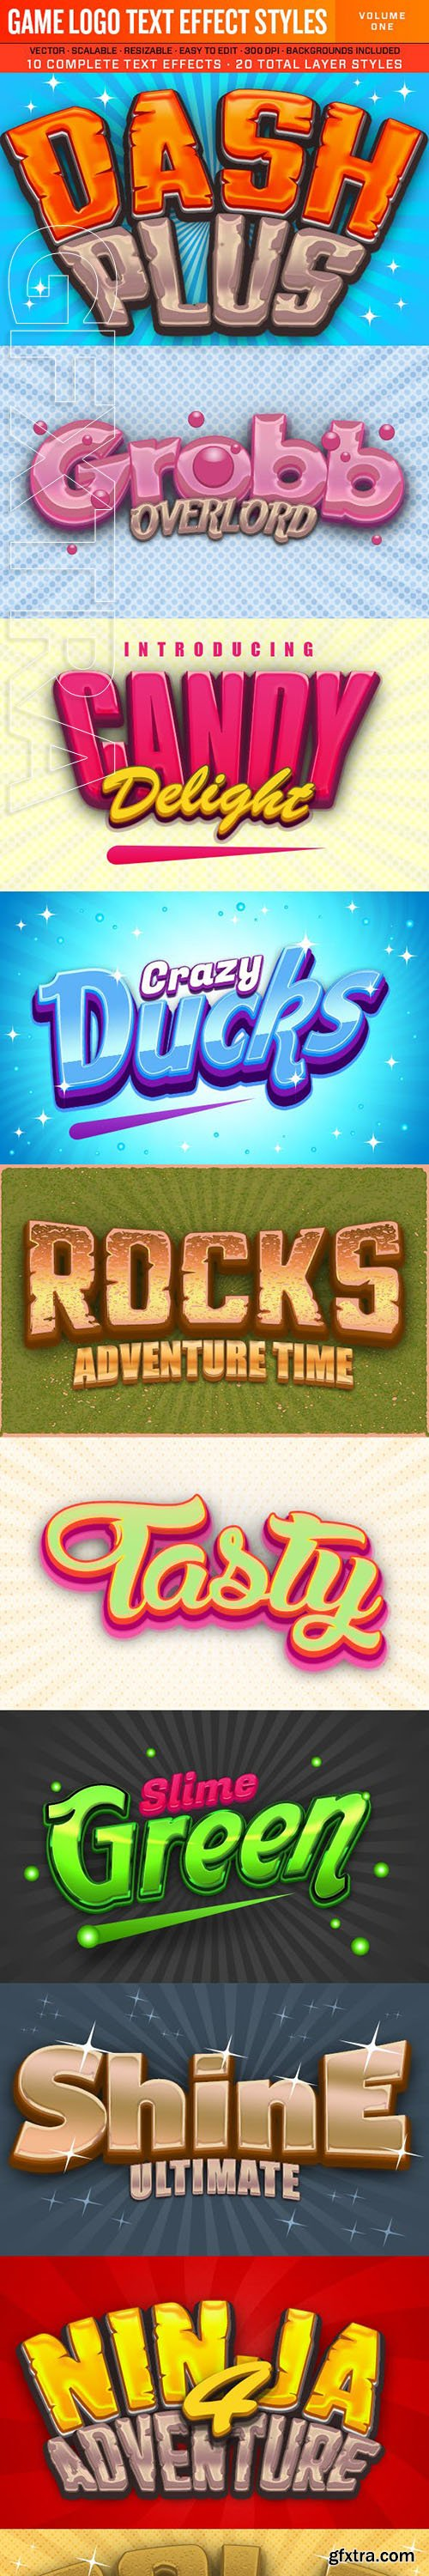 GraphicRiver - Game Logo Text Effect Styles 1 23649337